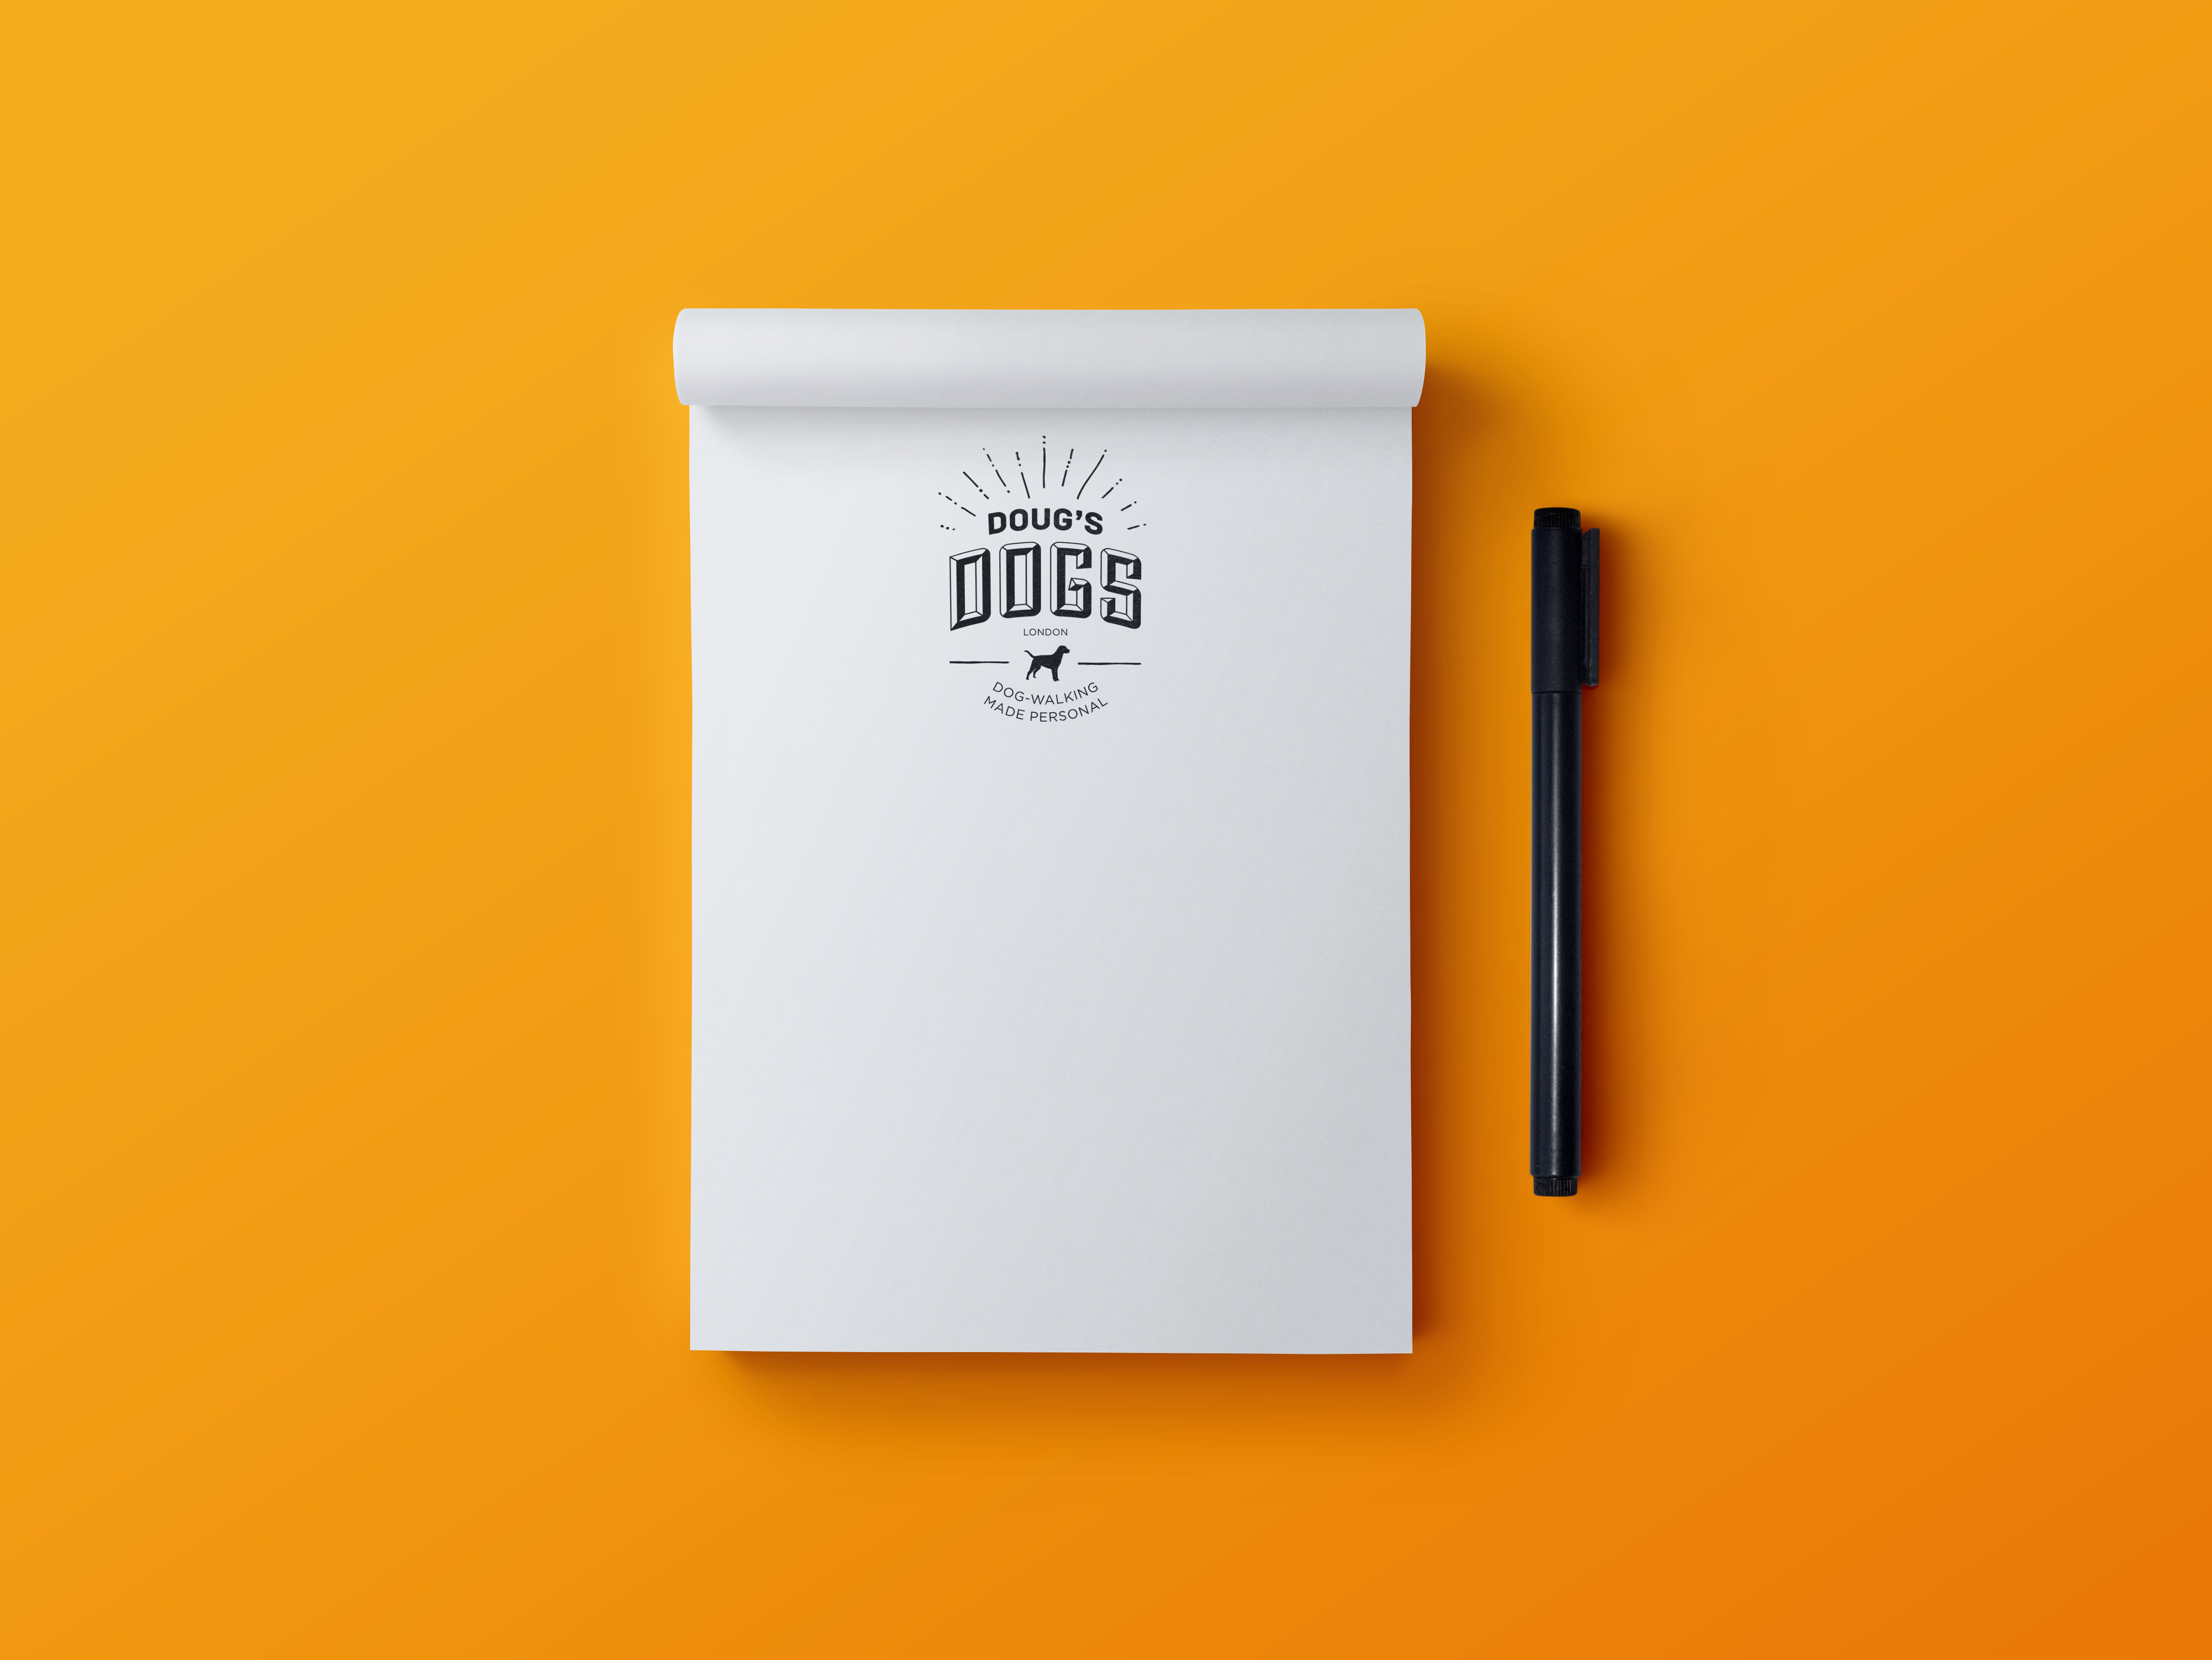 Image of Doug's Dogs notepad